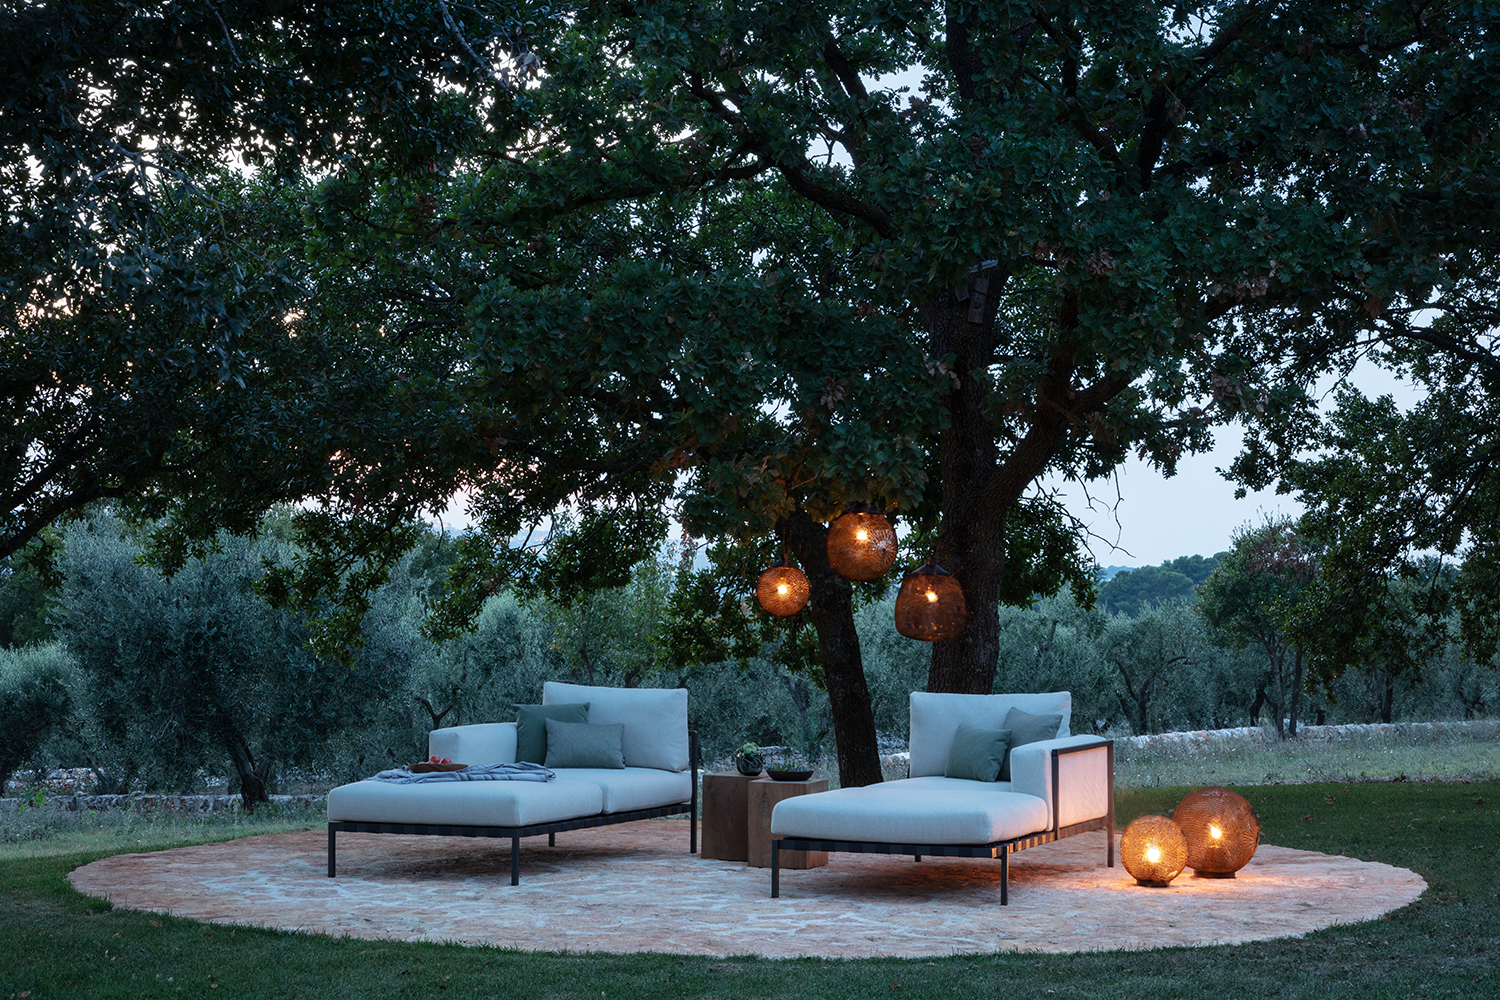 Outdoor loungers with romantic lighting